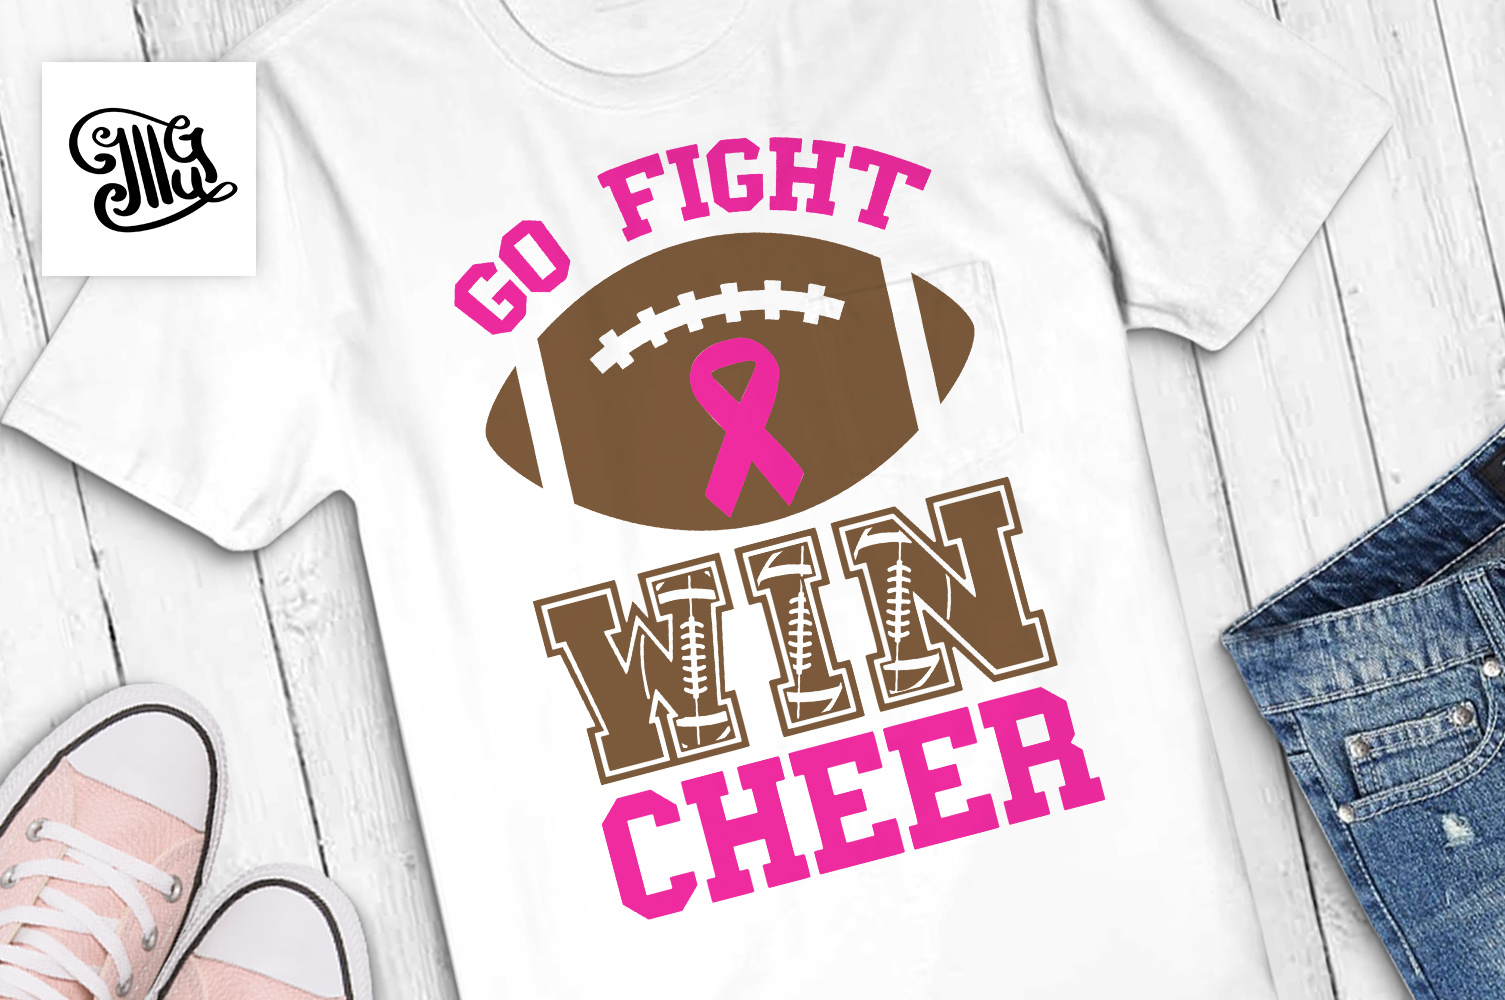 Go fight cheer example image 1